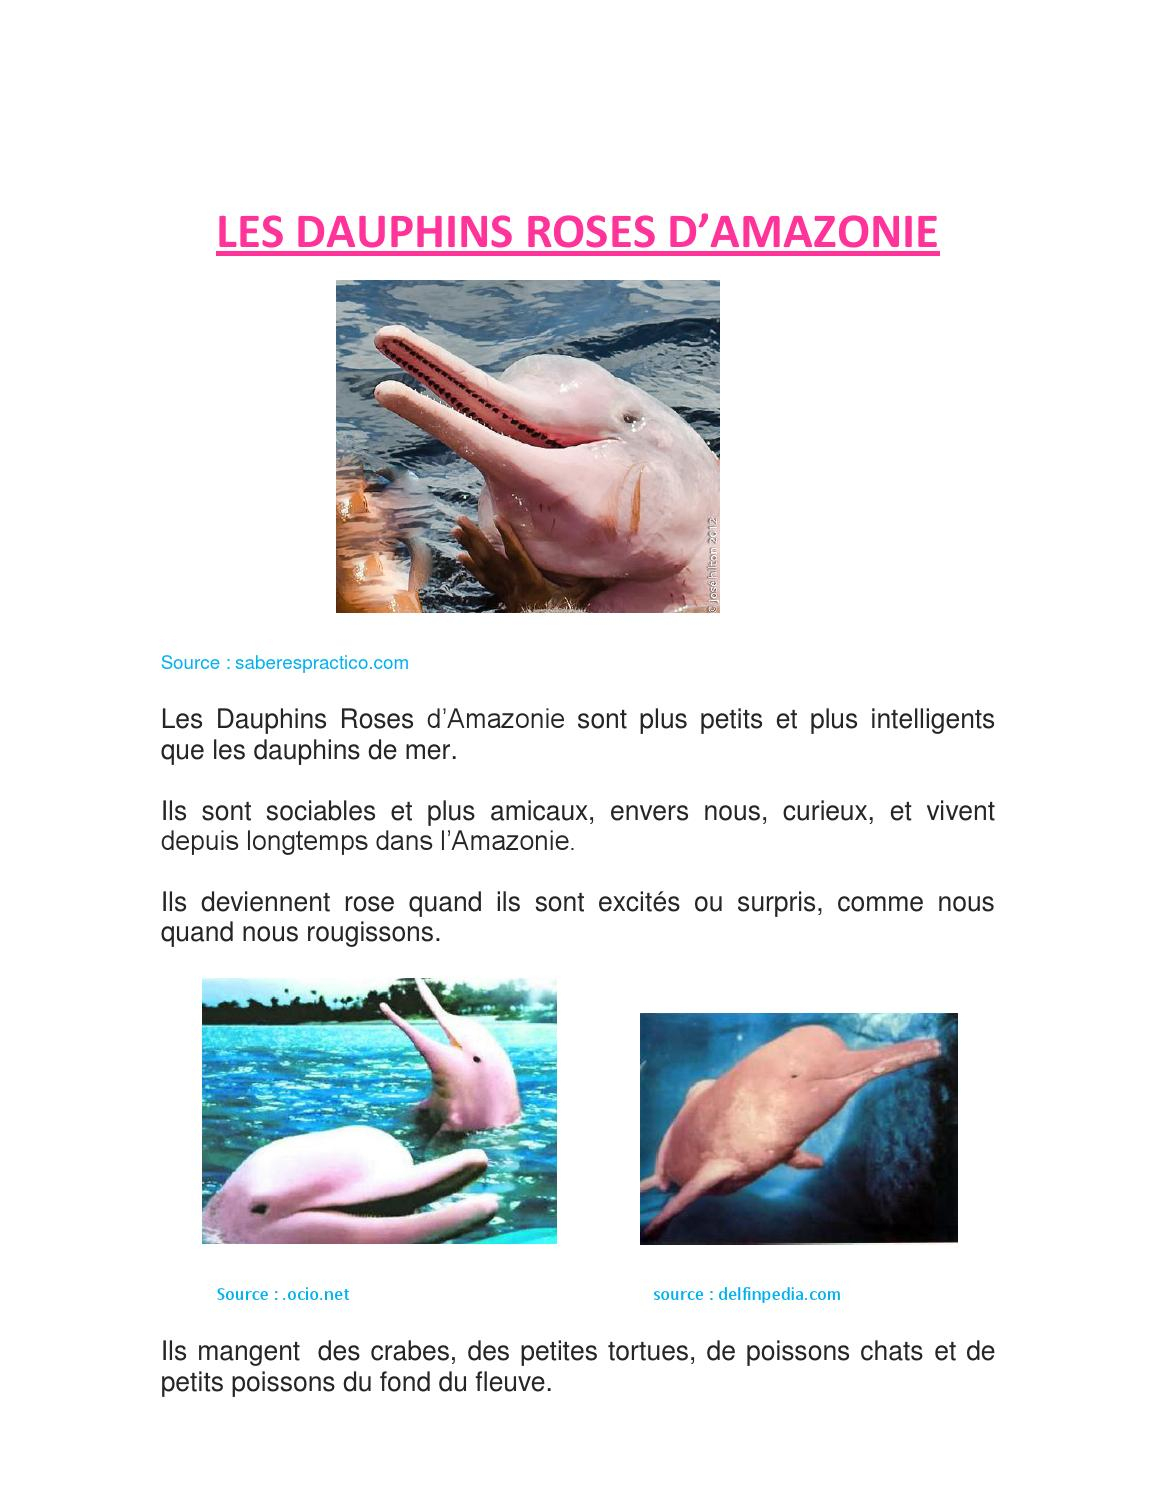 Les Dauphins Roses By Samagass - Issuu destiné Dauphin Amazonie